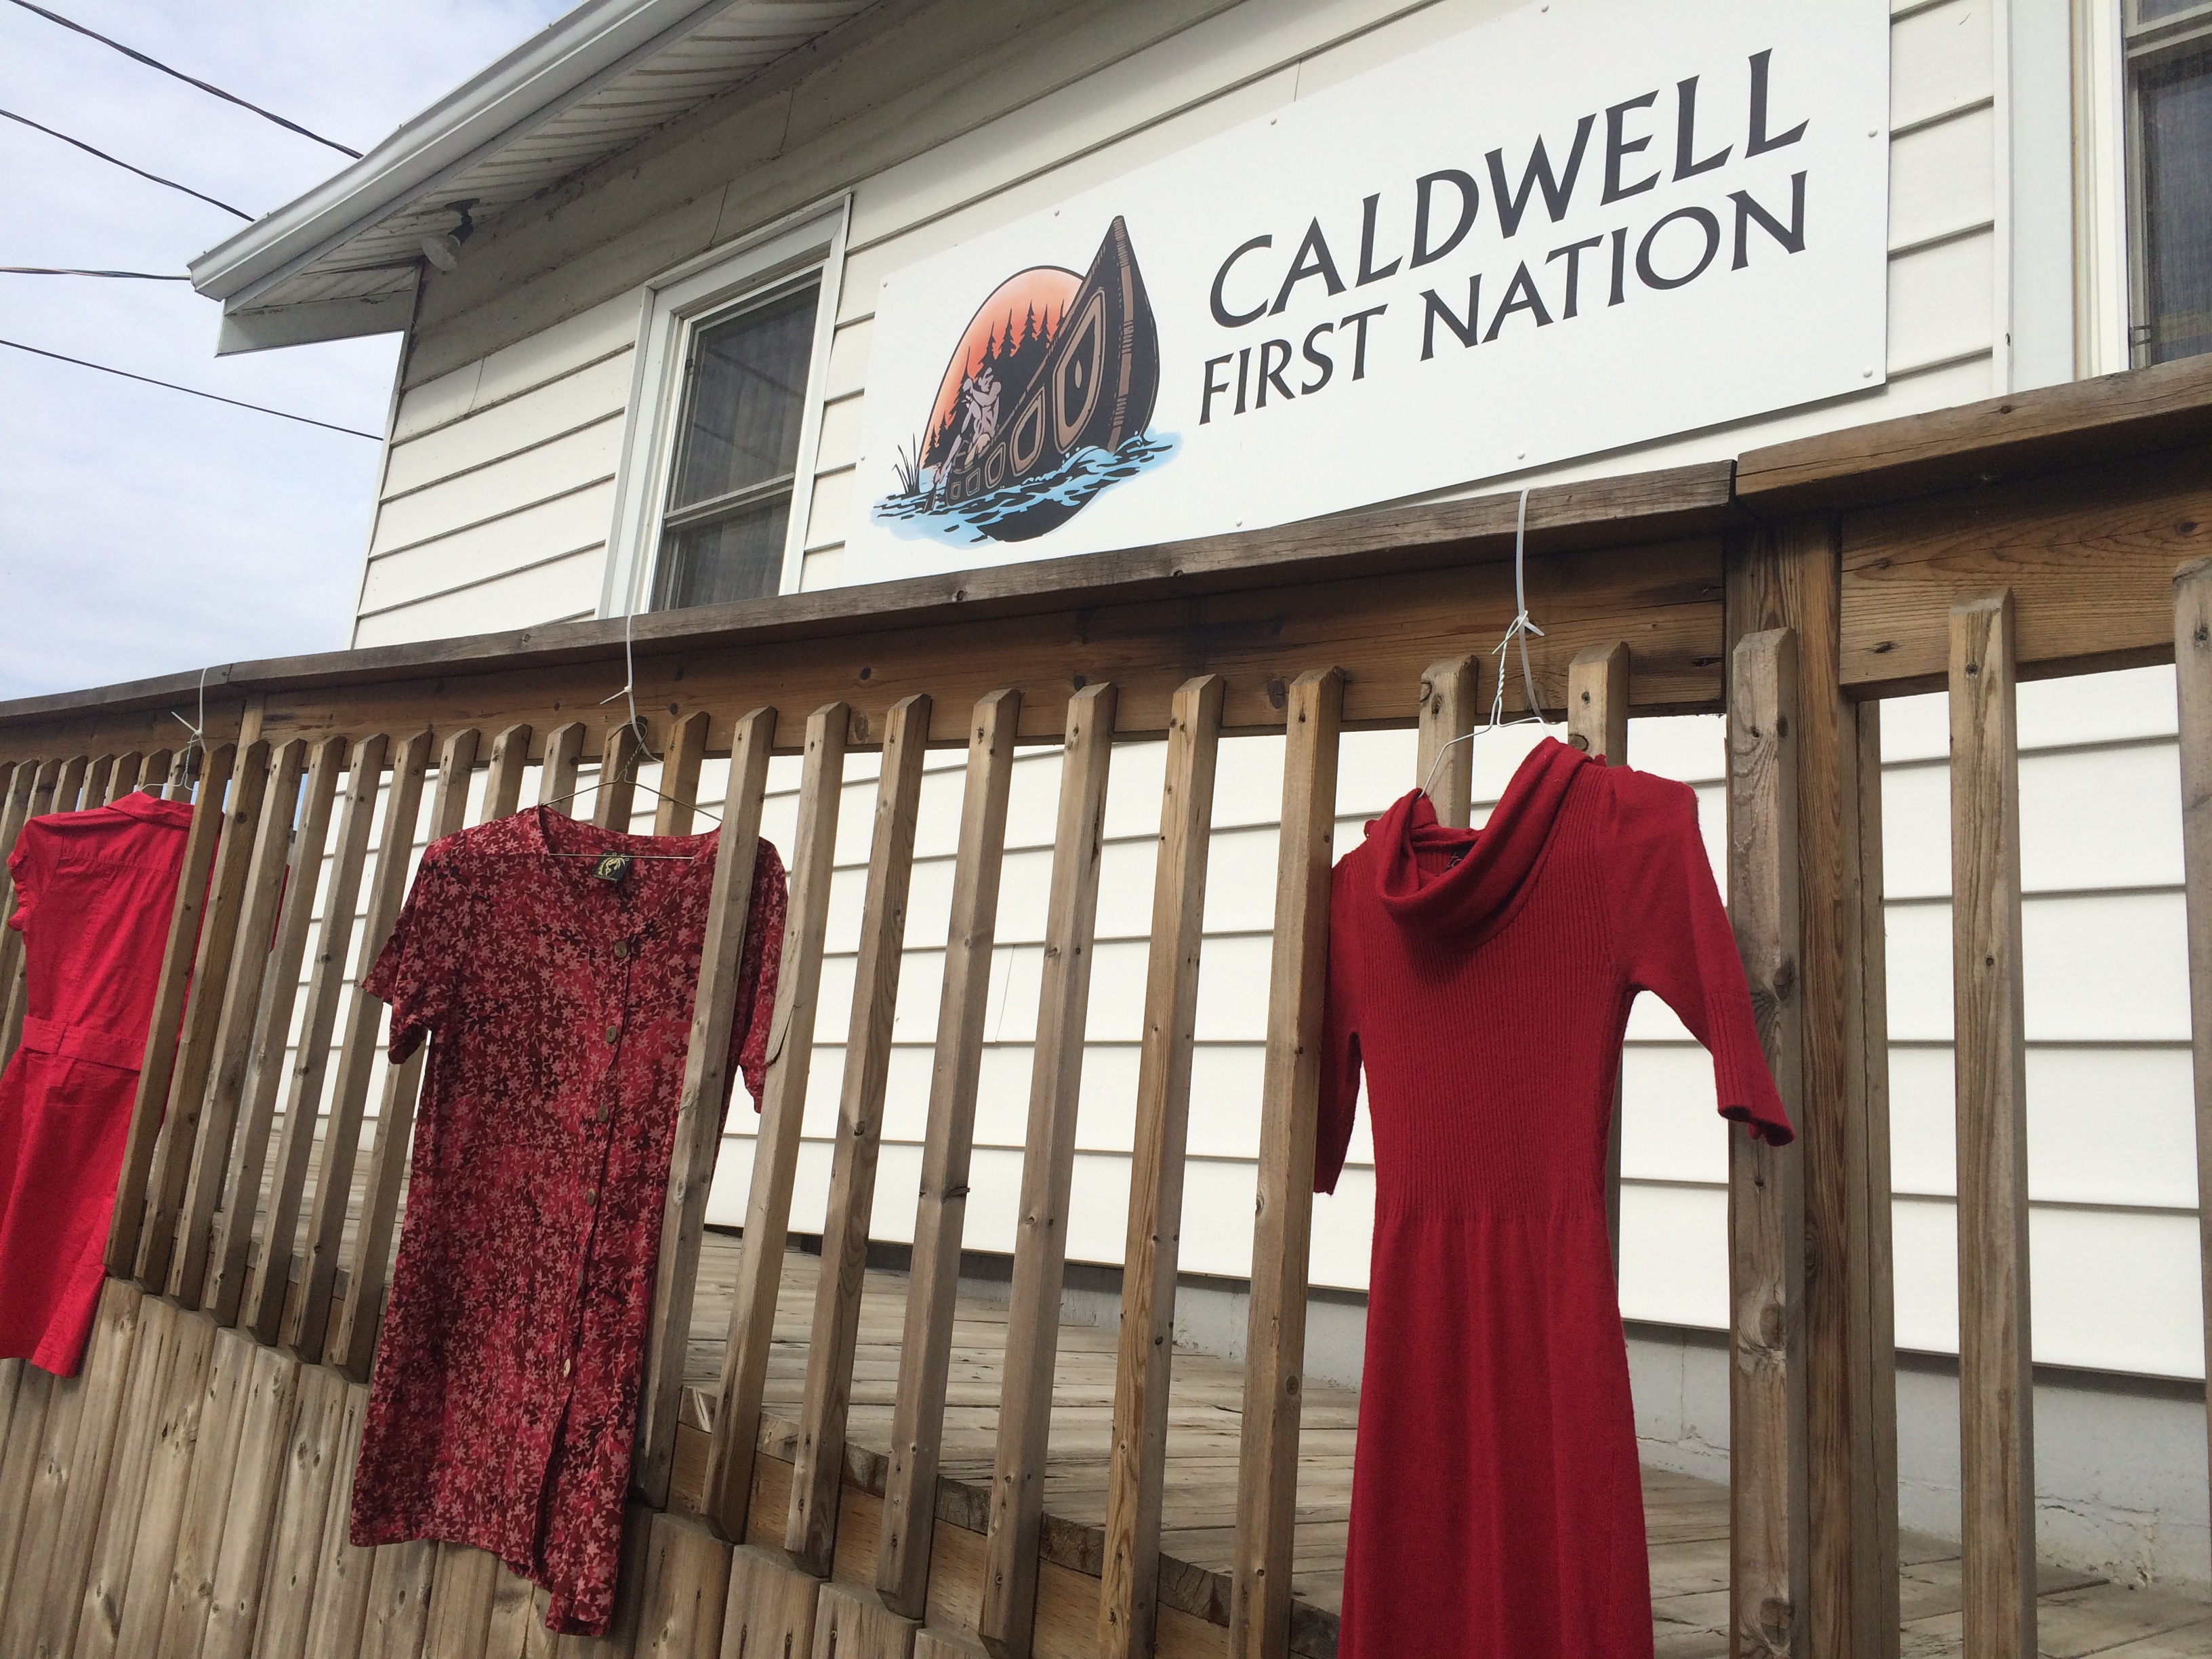 Red dresses hang outside the Caldwell First Nation office in Leamington on May 20, 2015. (Photo by Ricardo Veneza)